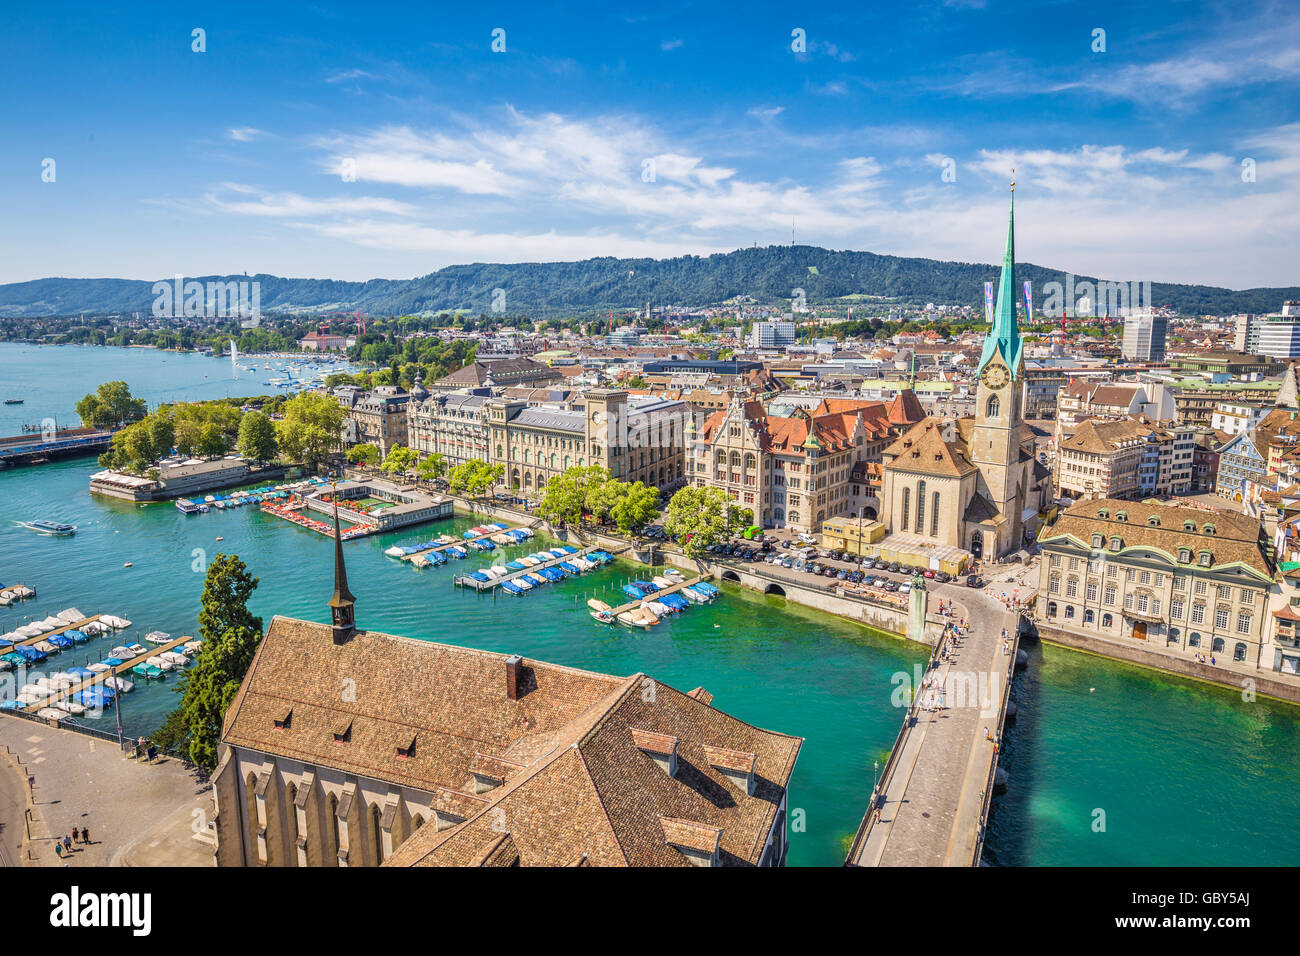 Aerial view of Zurich city center with famous Fraumunster Church and river Limmat at Lake Zurich from Grossmunster, - Stock Image